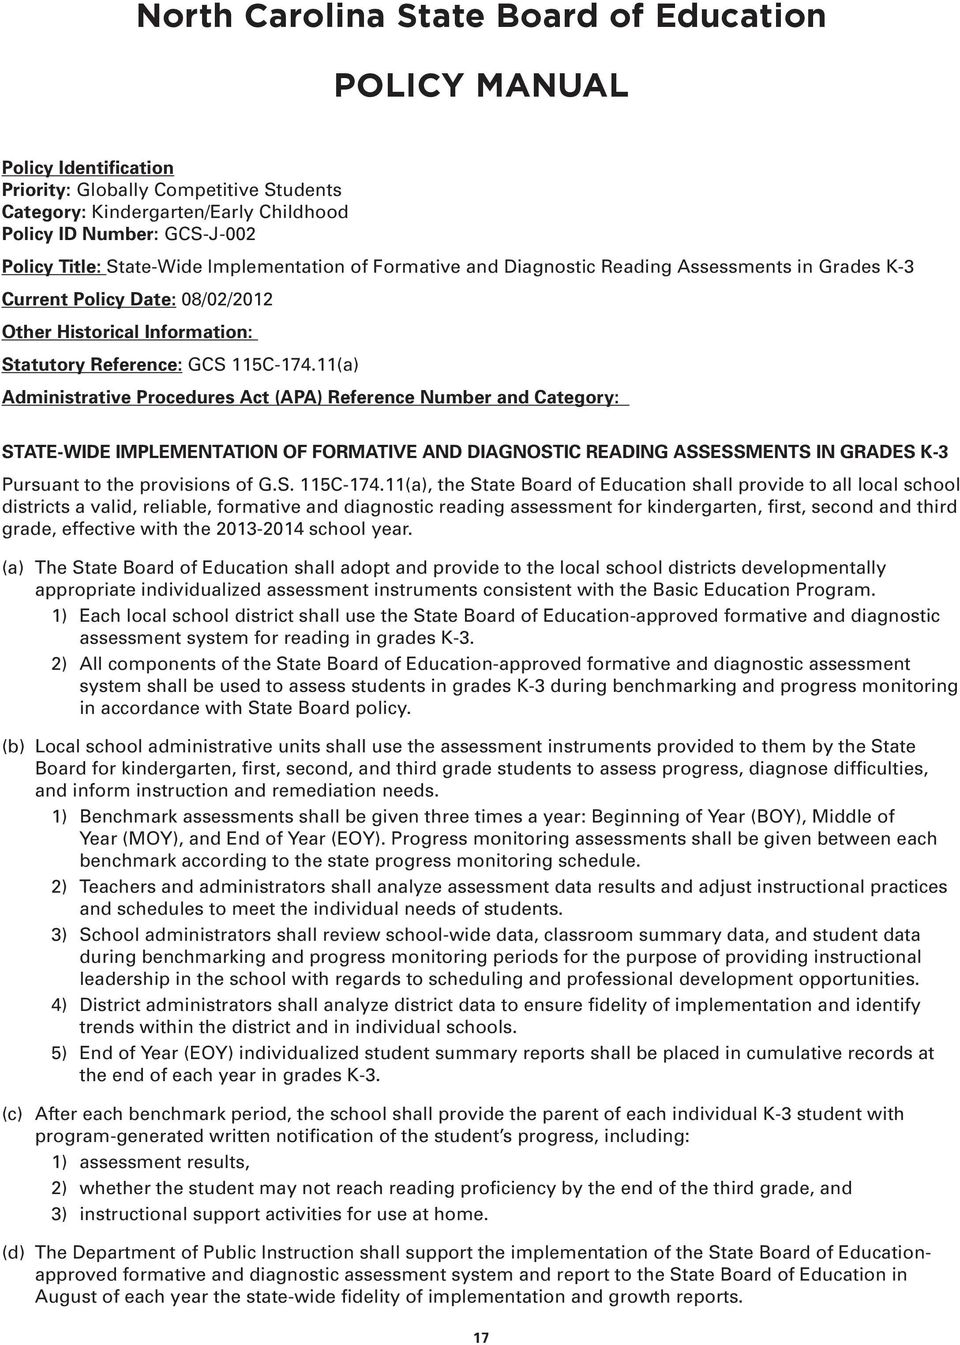 11(a) Administrative Procedures Act (APA) Reference Number and Category: STATE-WIDE IMPLEMENTATION OF FORMATIVE AND DIAGNOSTIC READING ASSESSMENTS IN GRADES K-3 Pursuant to the provisions of G.S. 115C-174.